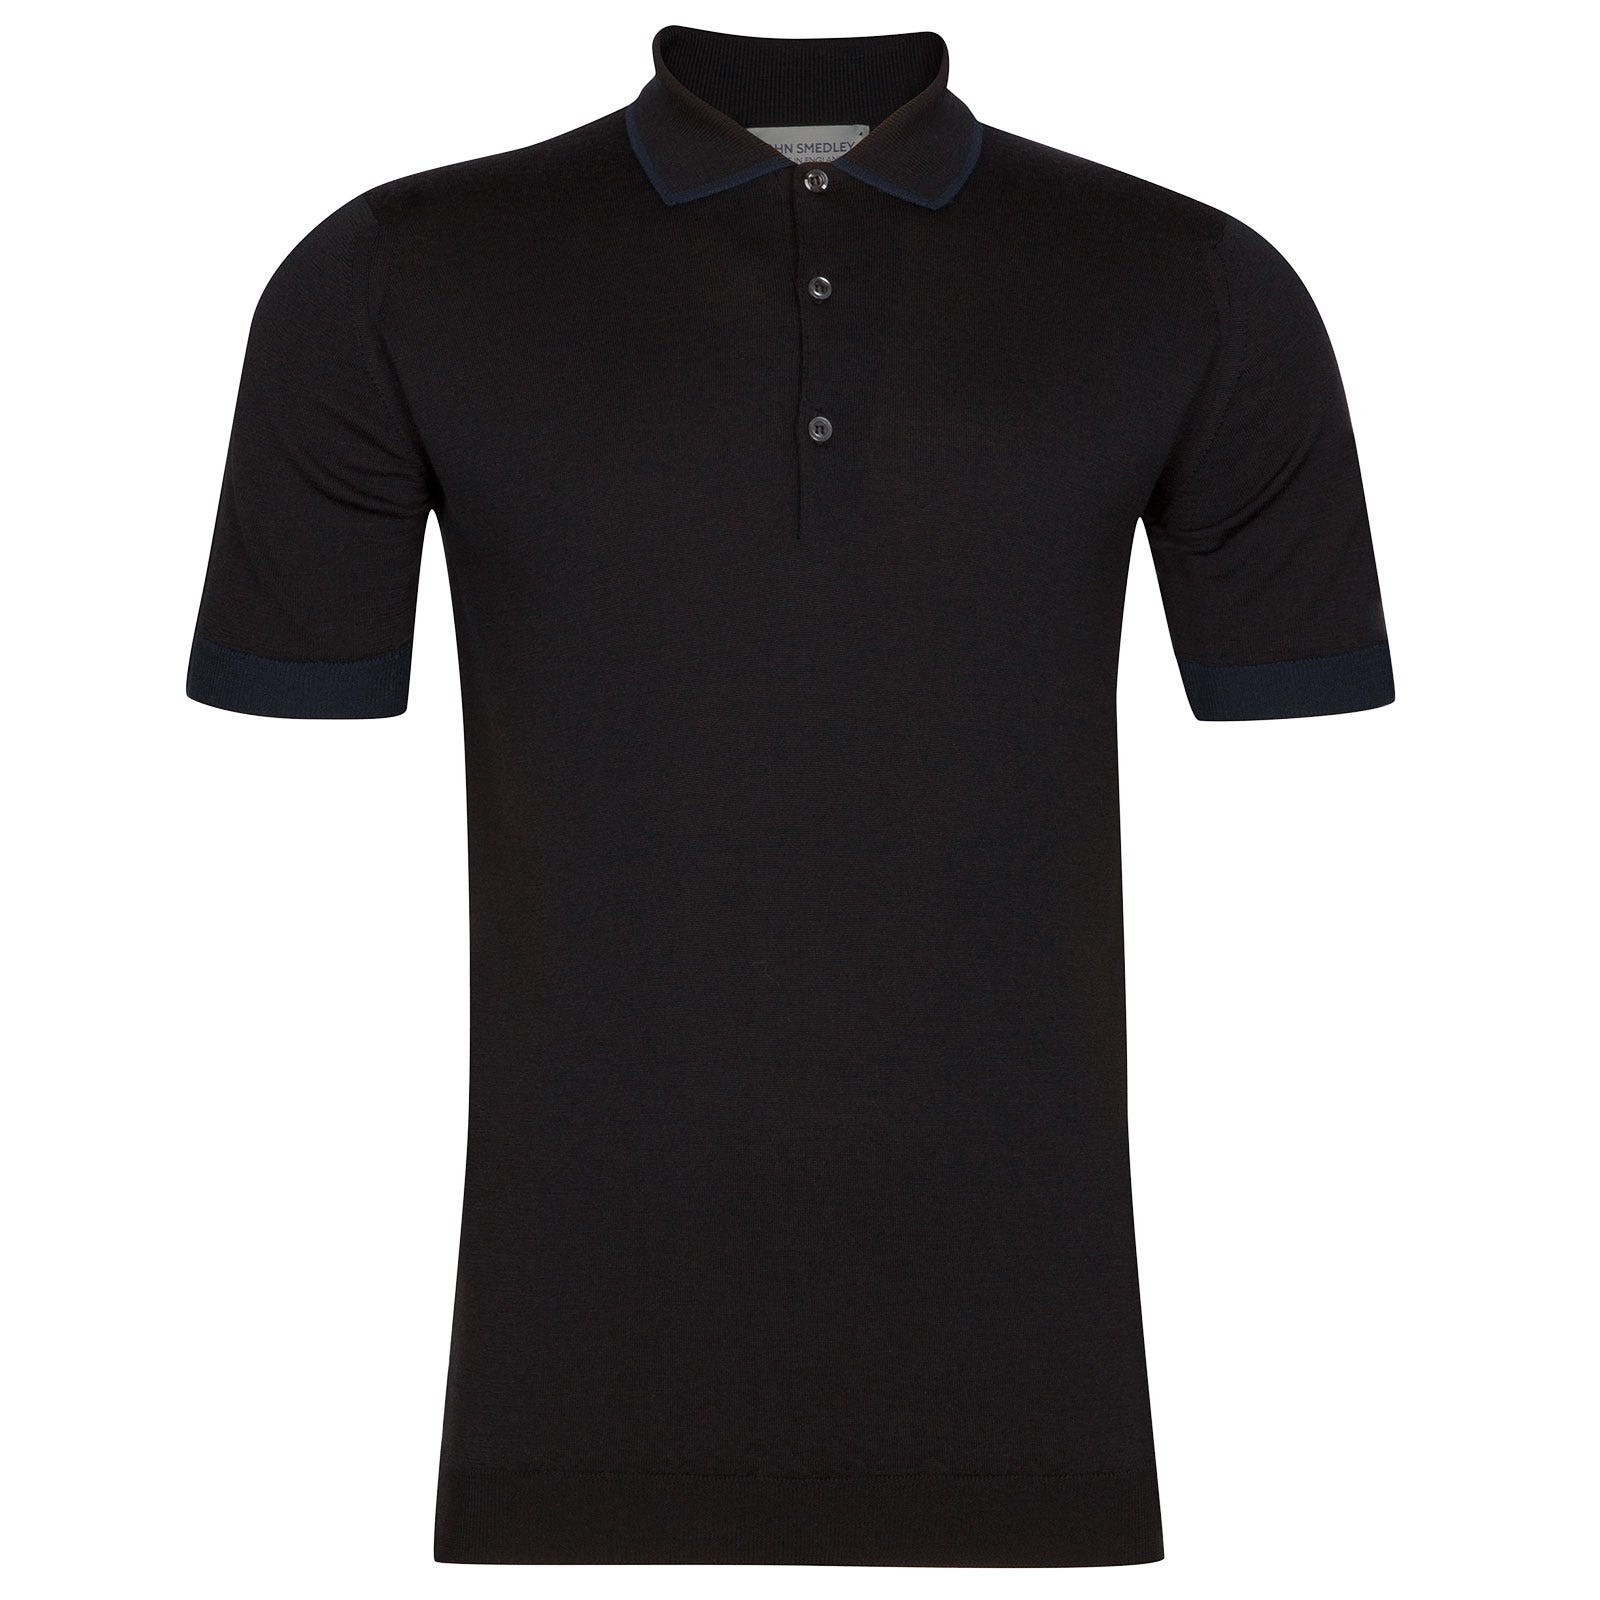 John Smedley nailsea Merino Wool Shirt in Black/Midnight-XL